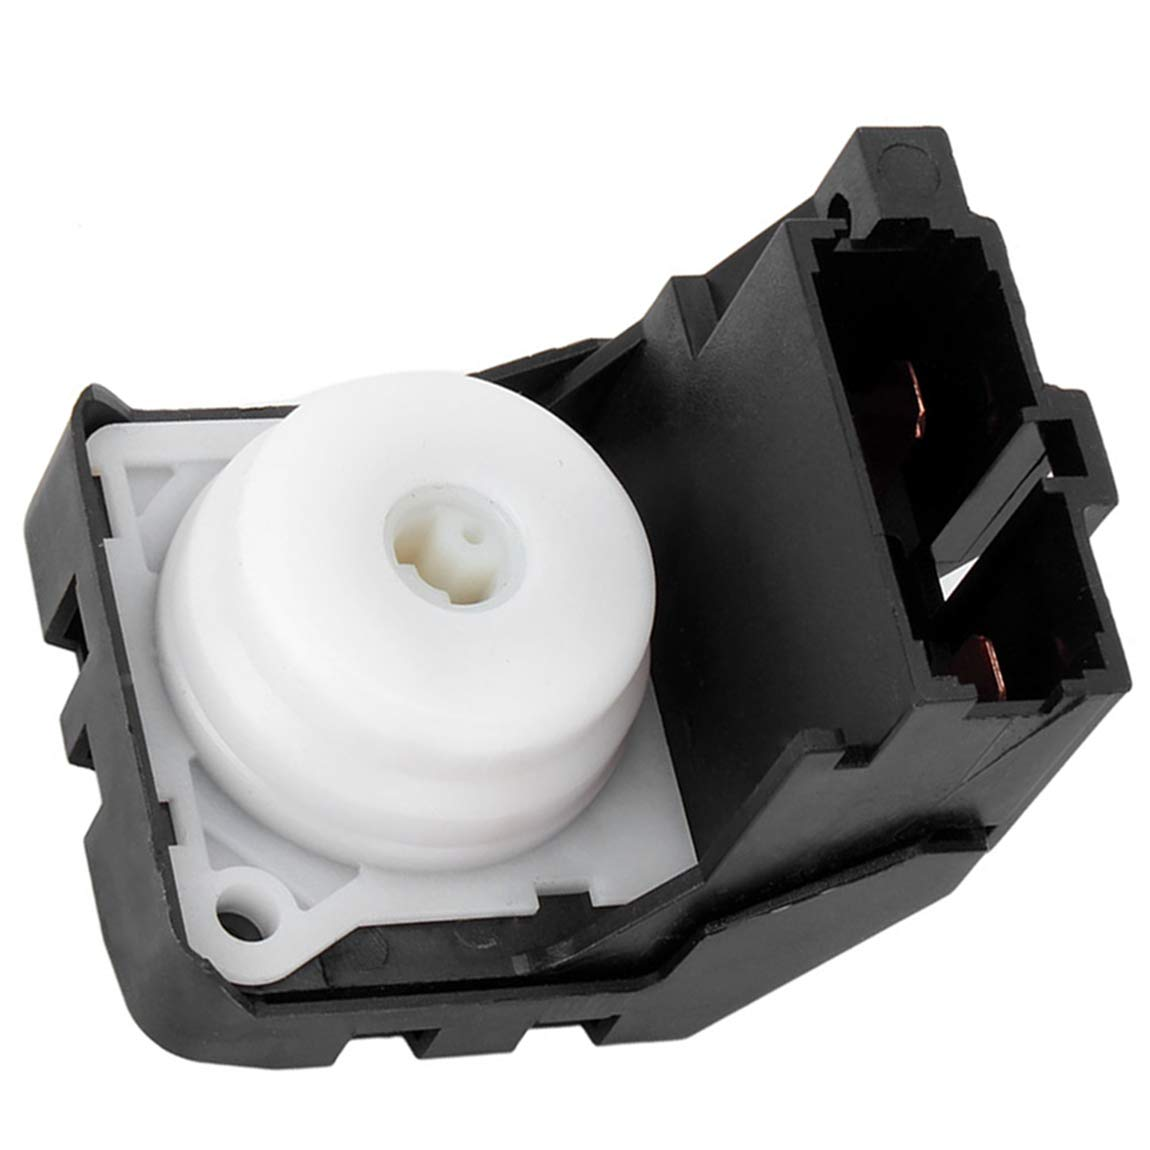 35130-SAA-J51 Ignition Starter Switch Steering New Free Shipping Compatibl Tucson Mall